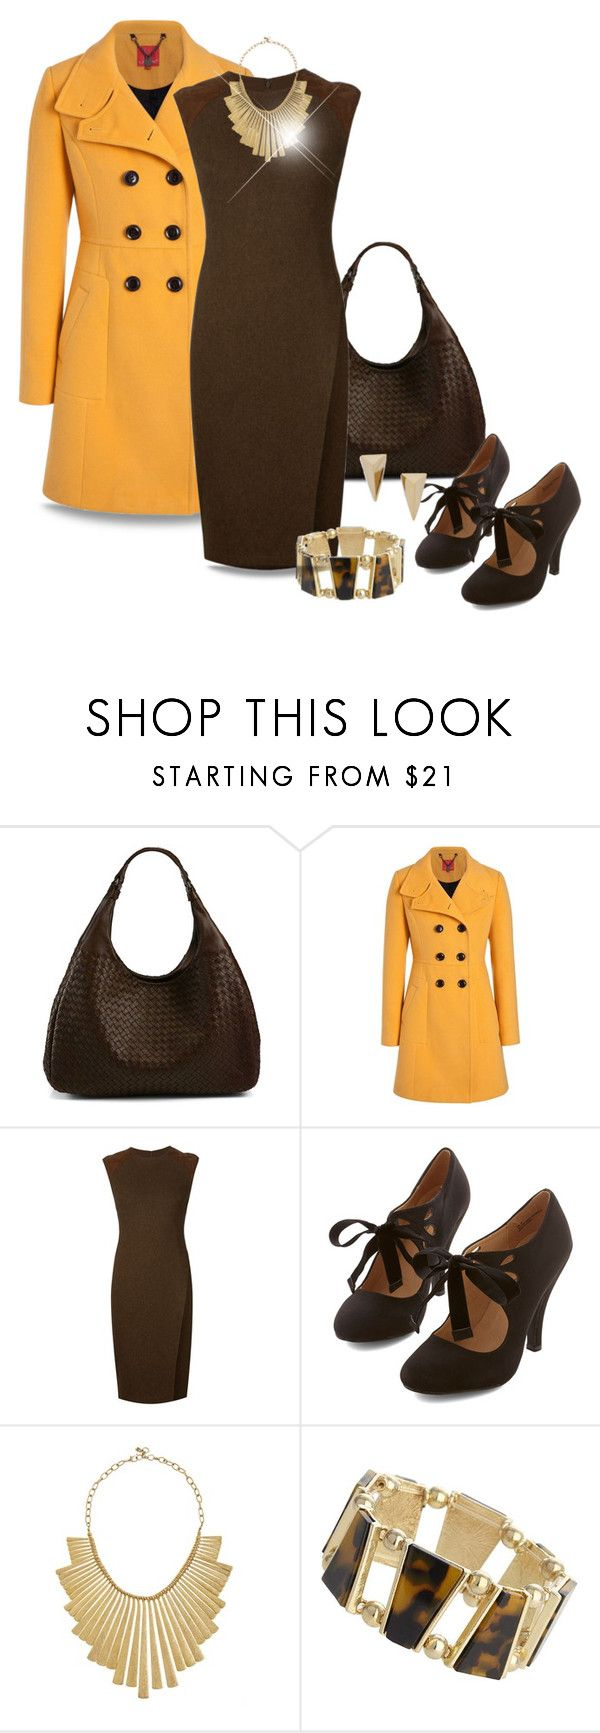 Coat and Dress by stileclassico on Polyvore featuring Ralph Lauren Black Label, Bottega Veneta, Wallis, Lucky Brand, Alexis Bittar, Fall, contest and dressandcoat